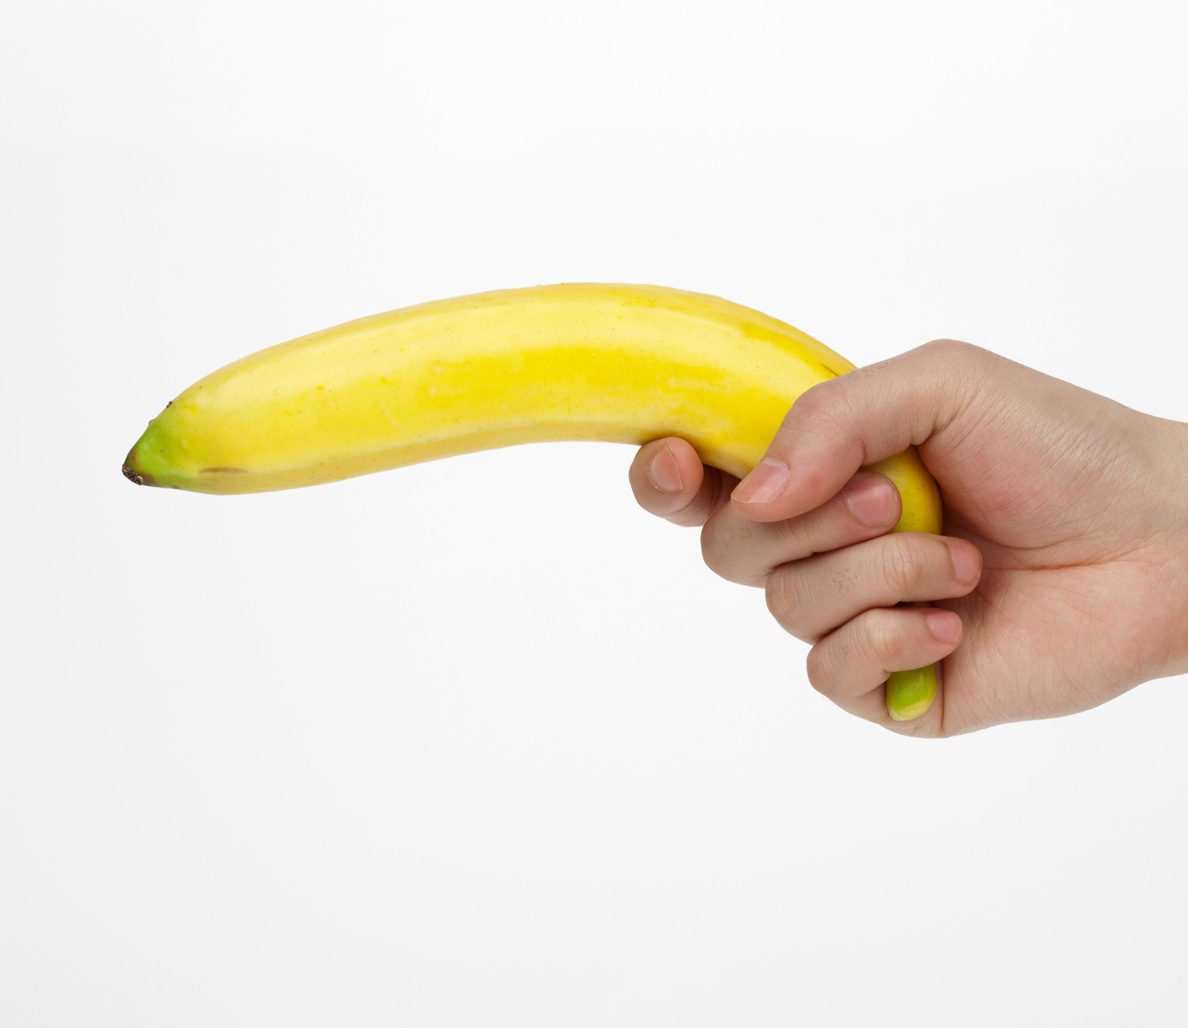 How big is my penis going to be